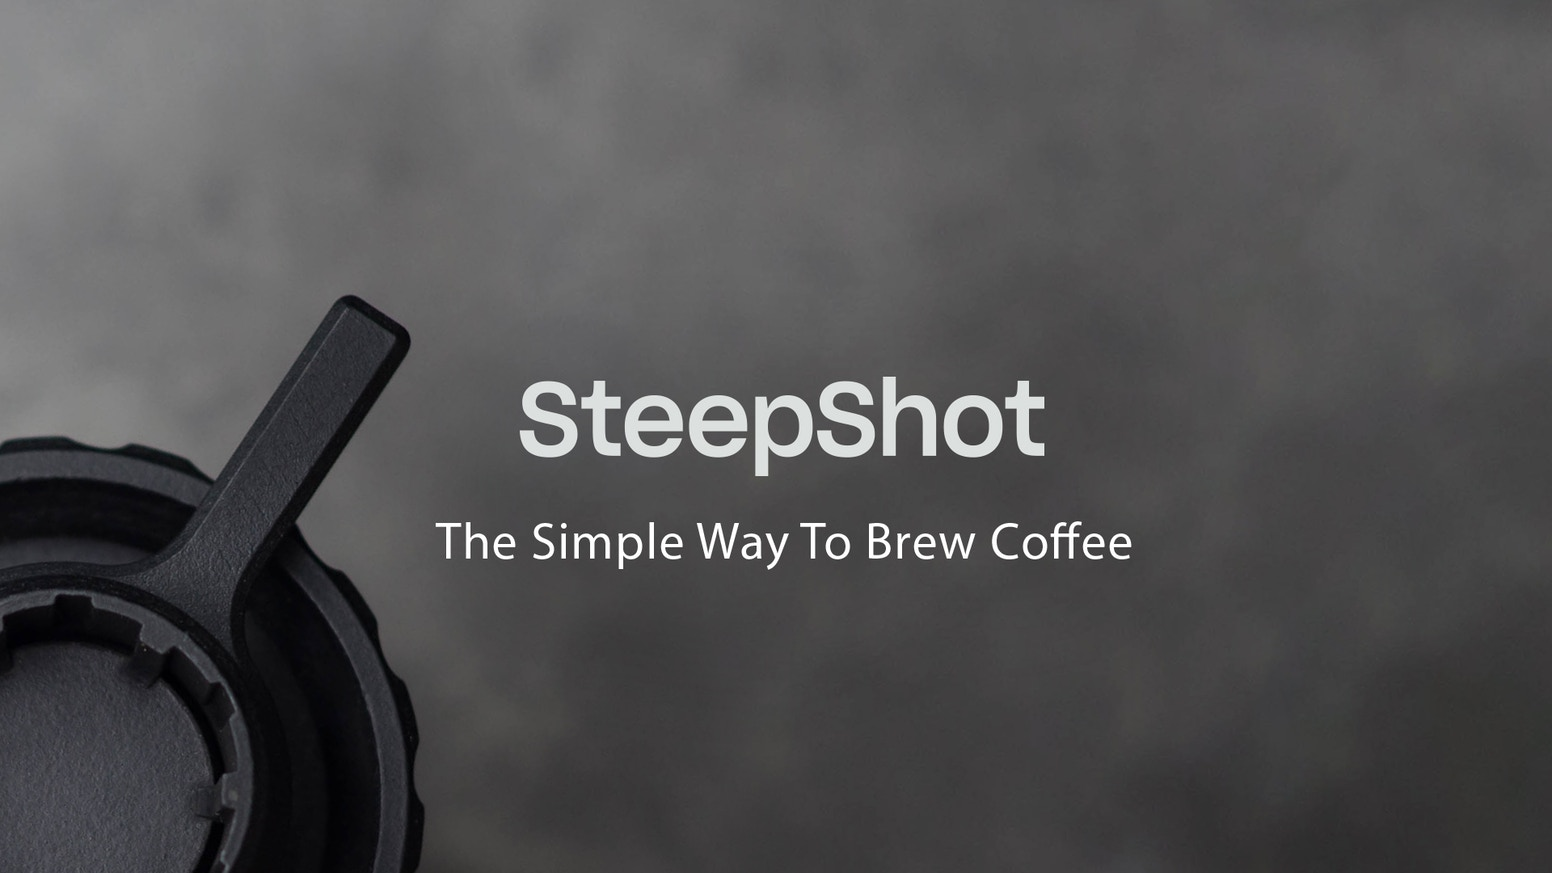 The portable coffee brewer that utilises its own accumulated pressure to brew delicious coffee in under one minute. We are now live on Indiegogo!